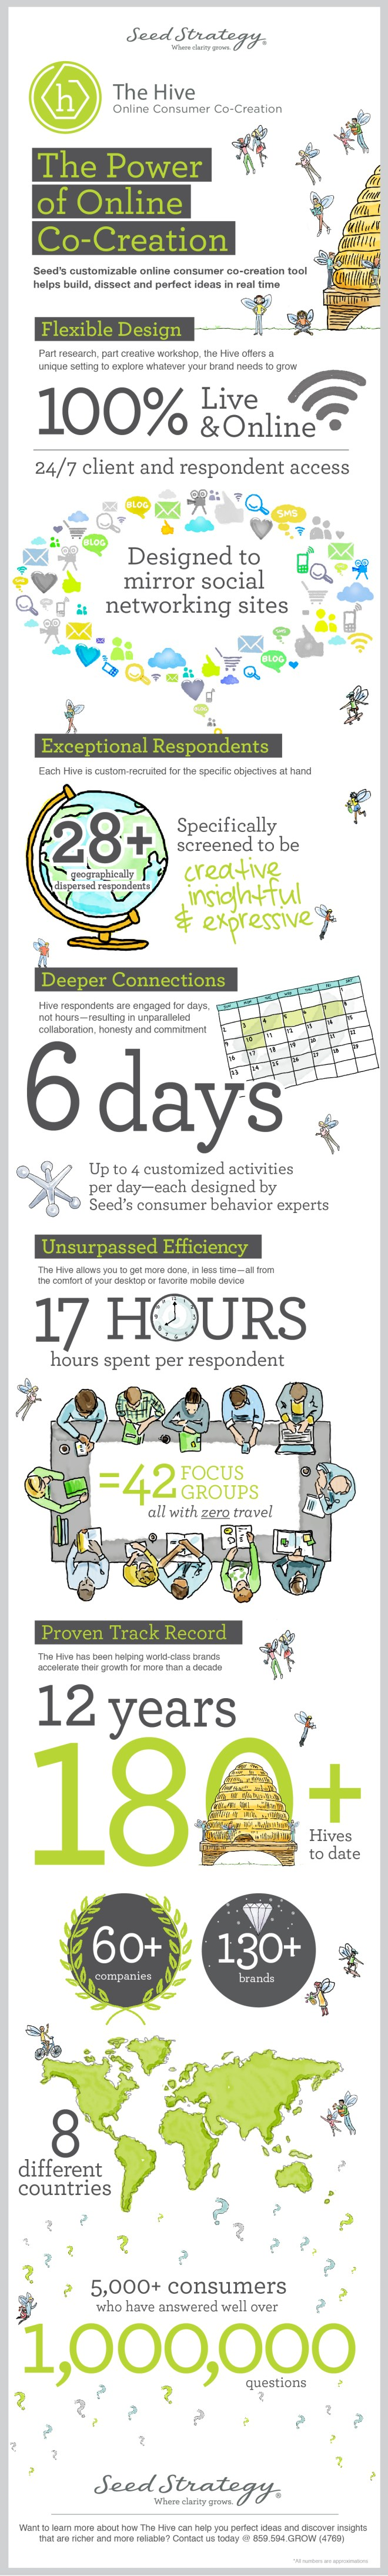 Infographic showing key stats from The Hive